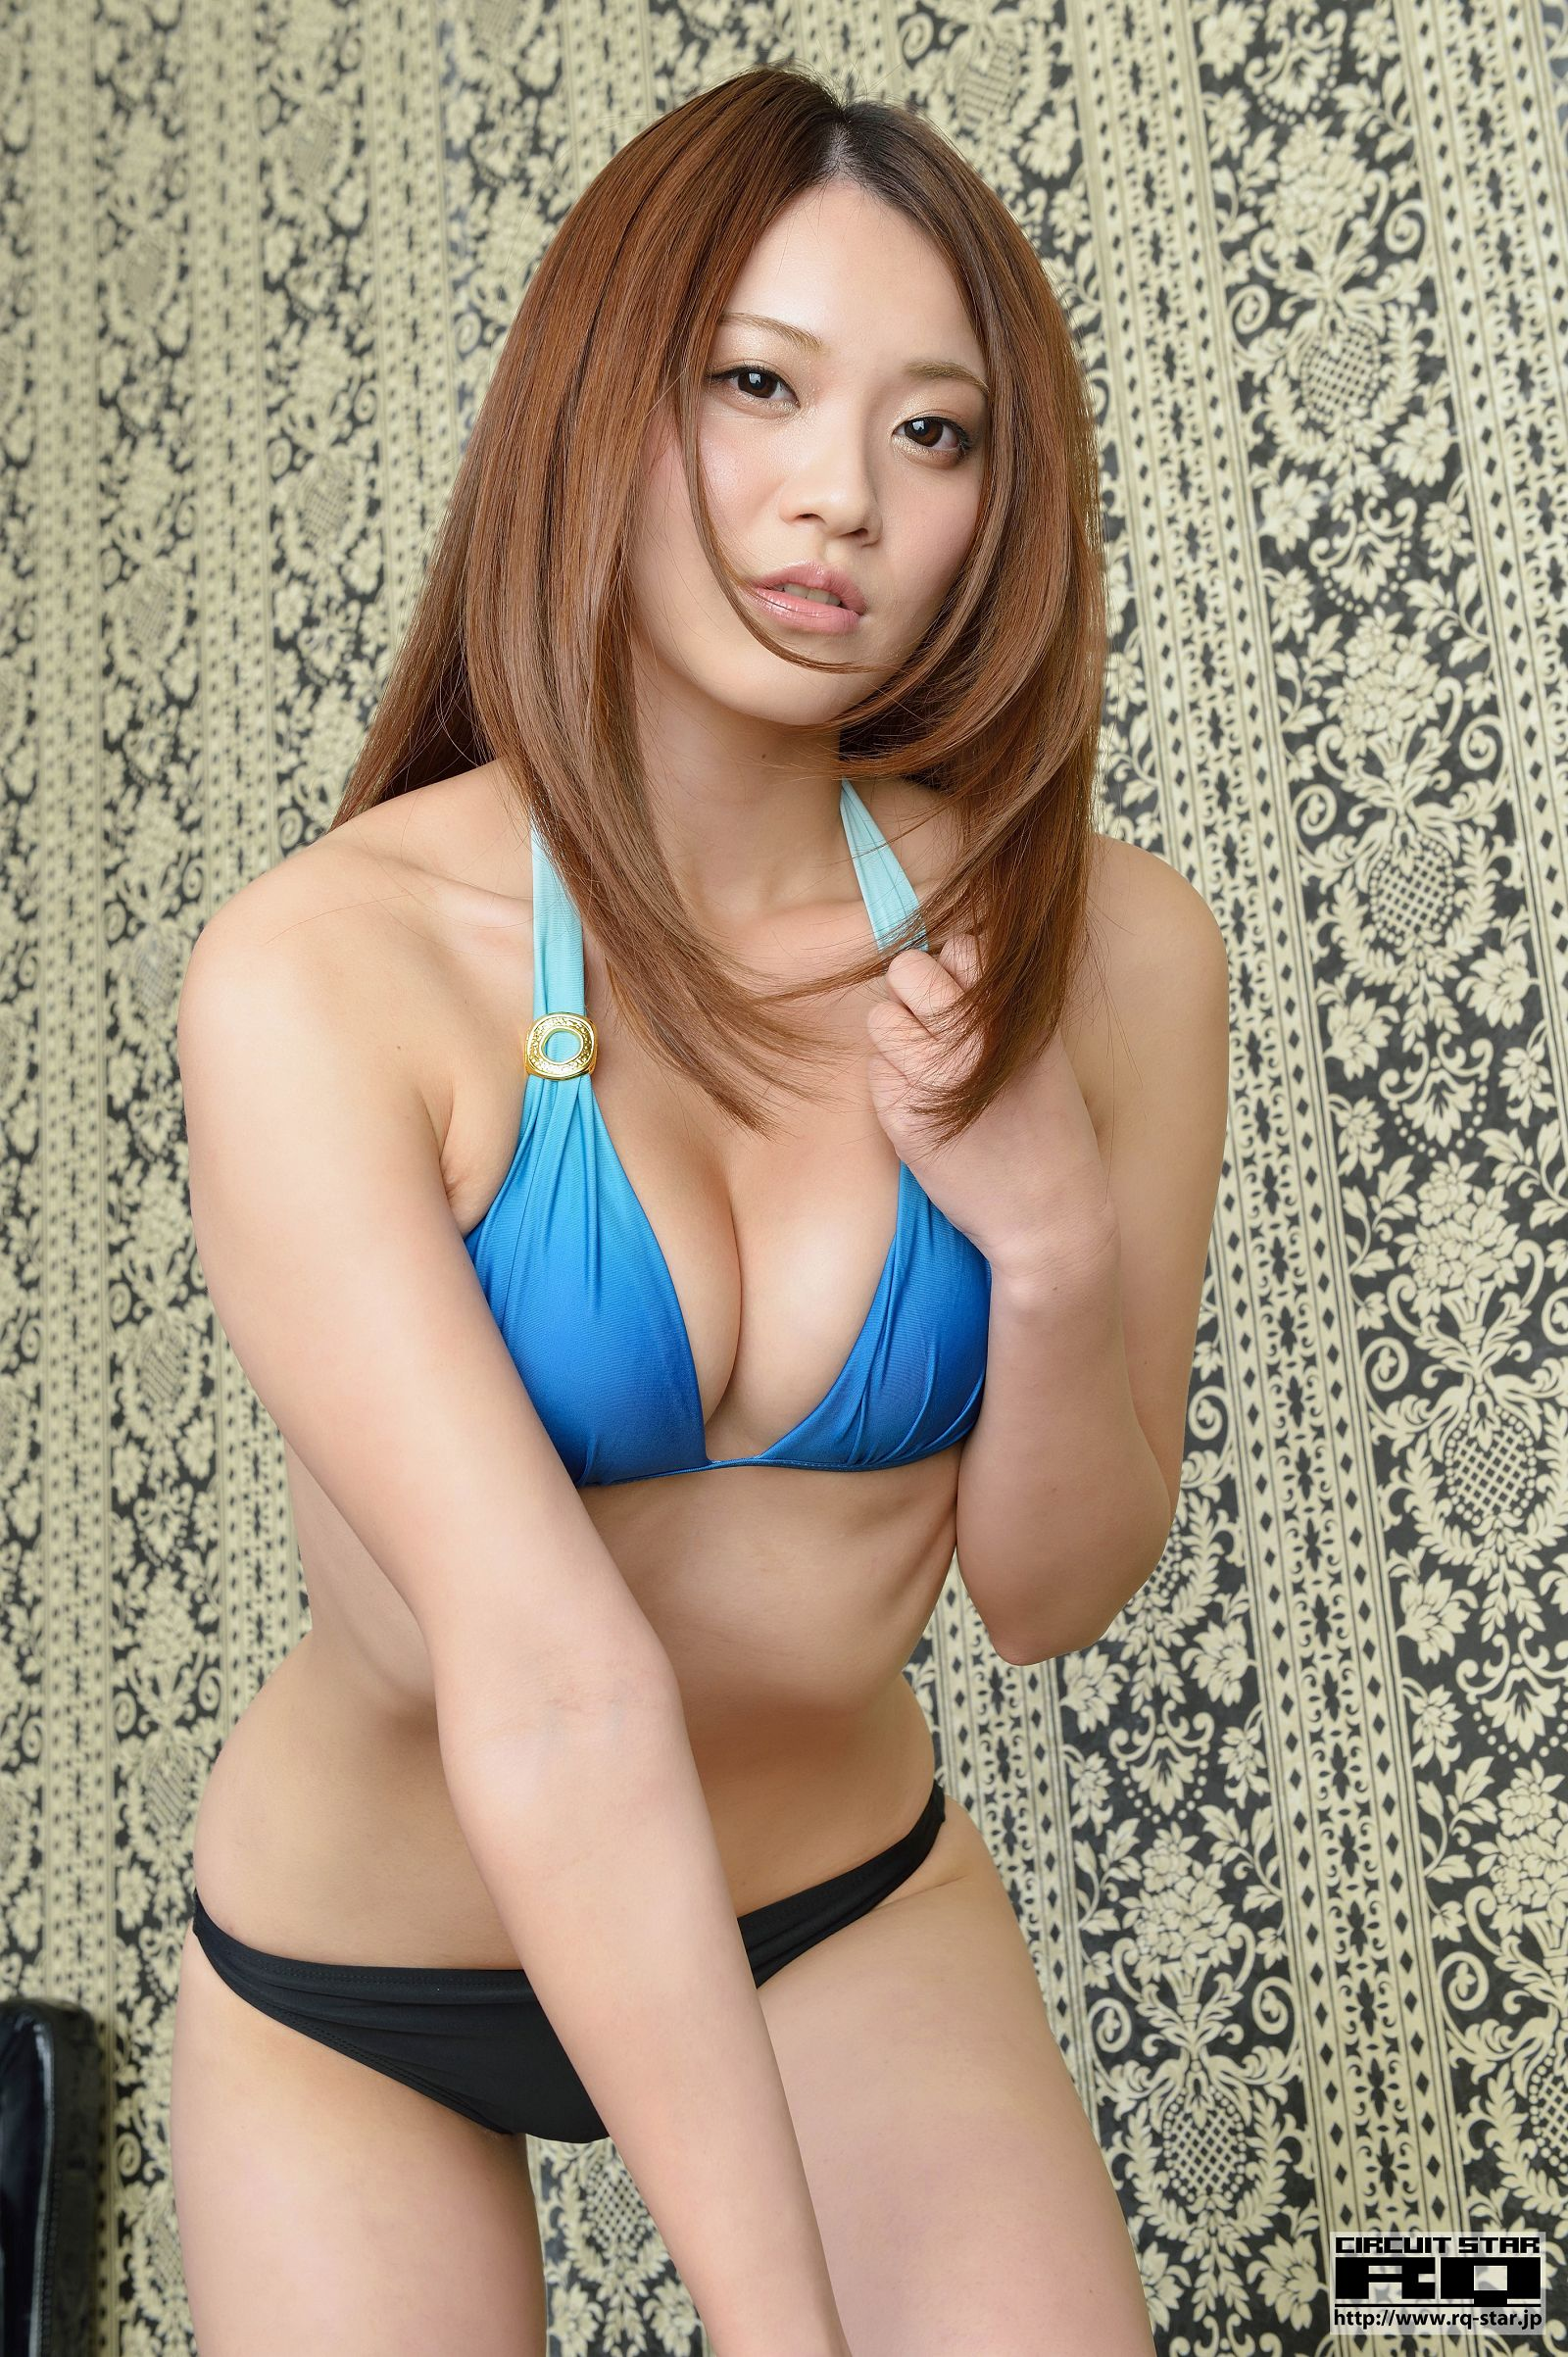 [RQ STAR美女] NO.00886 Mai Nishimura 西村麻依 Swim Suits[80P] RQ STAR 第3张